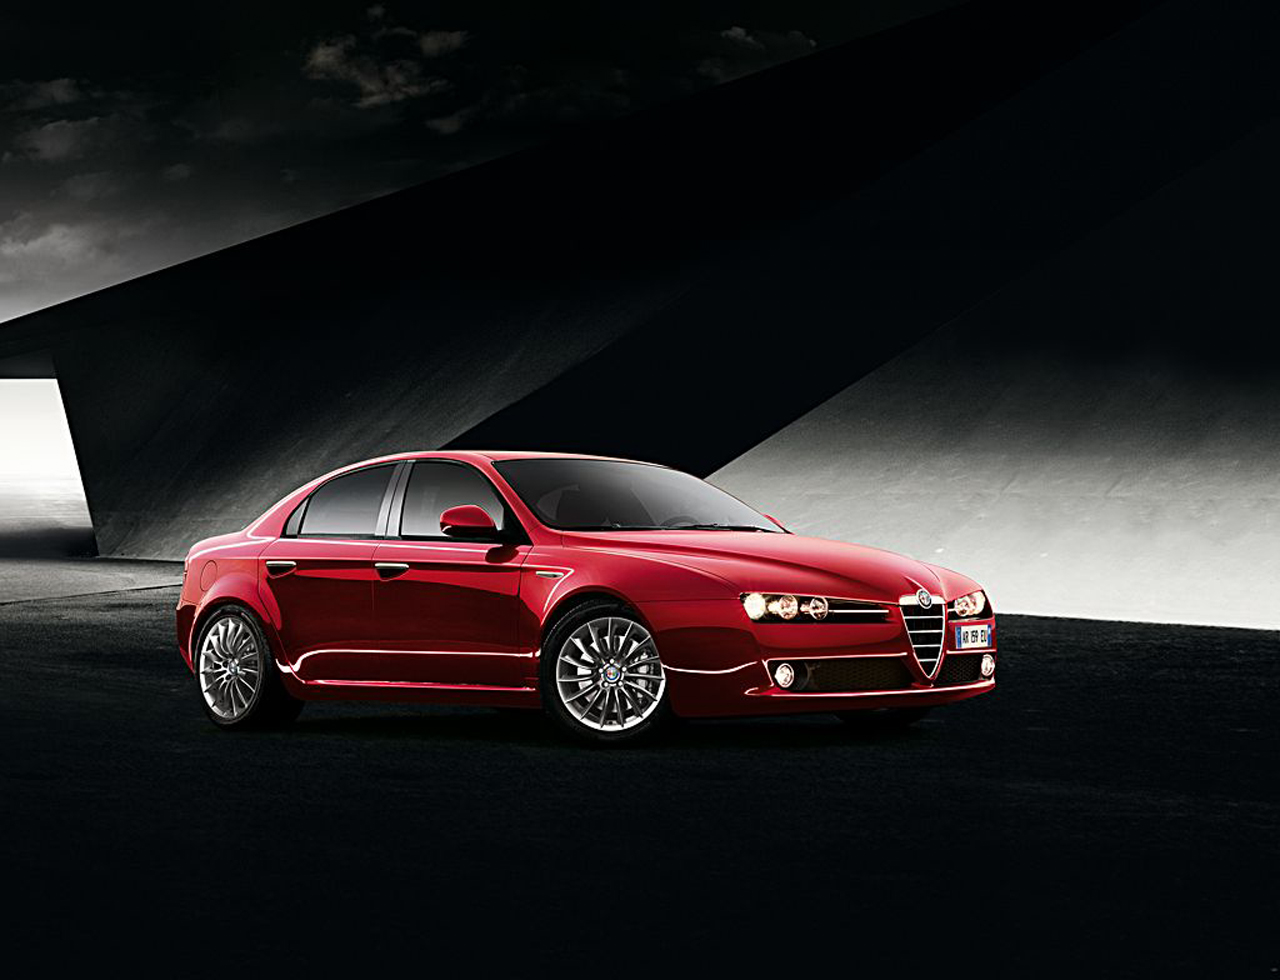 alfa romeo 159 heading for the edgy dustbin of history autoblog. Black Bedroom Furniture Sets. Home Design Ideas